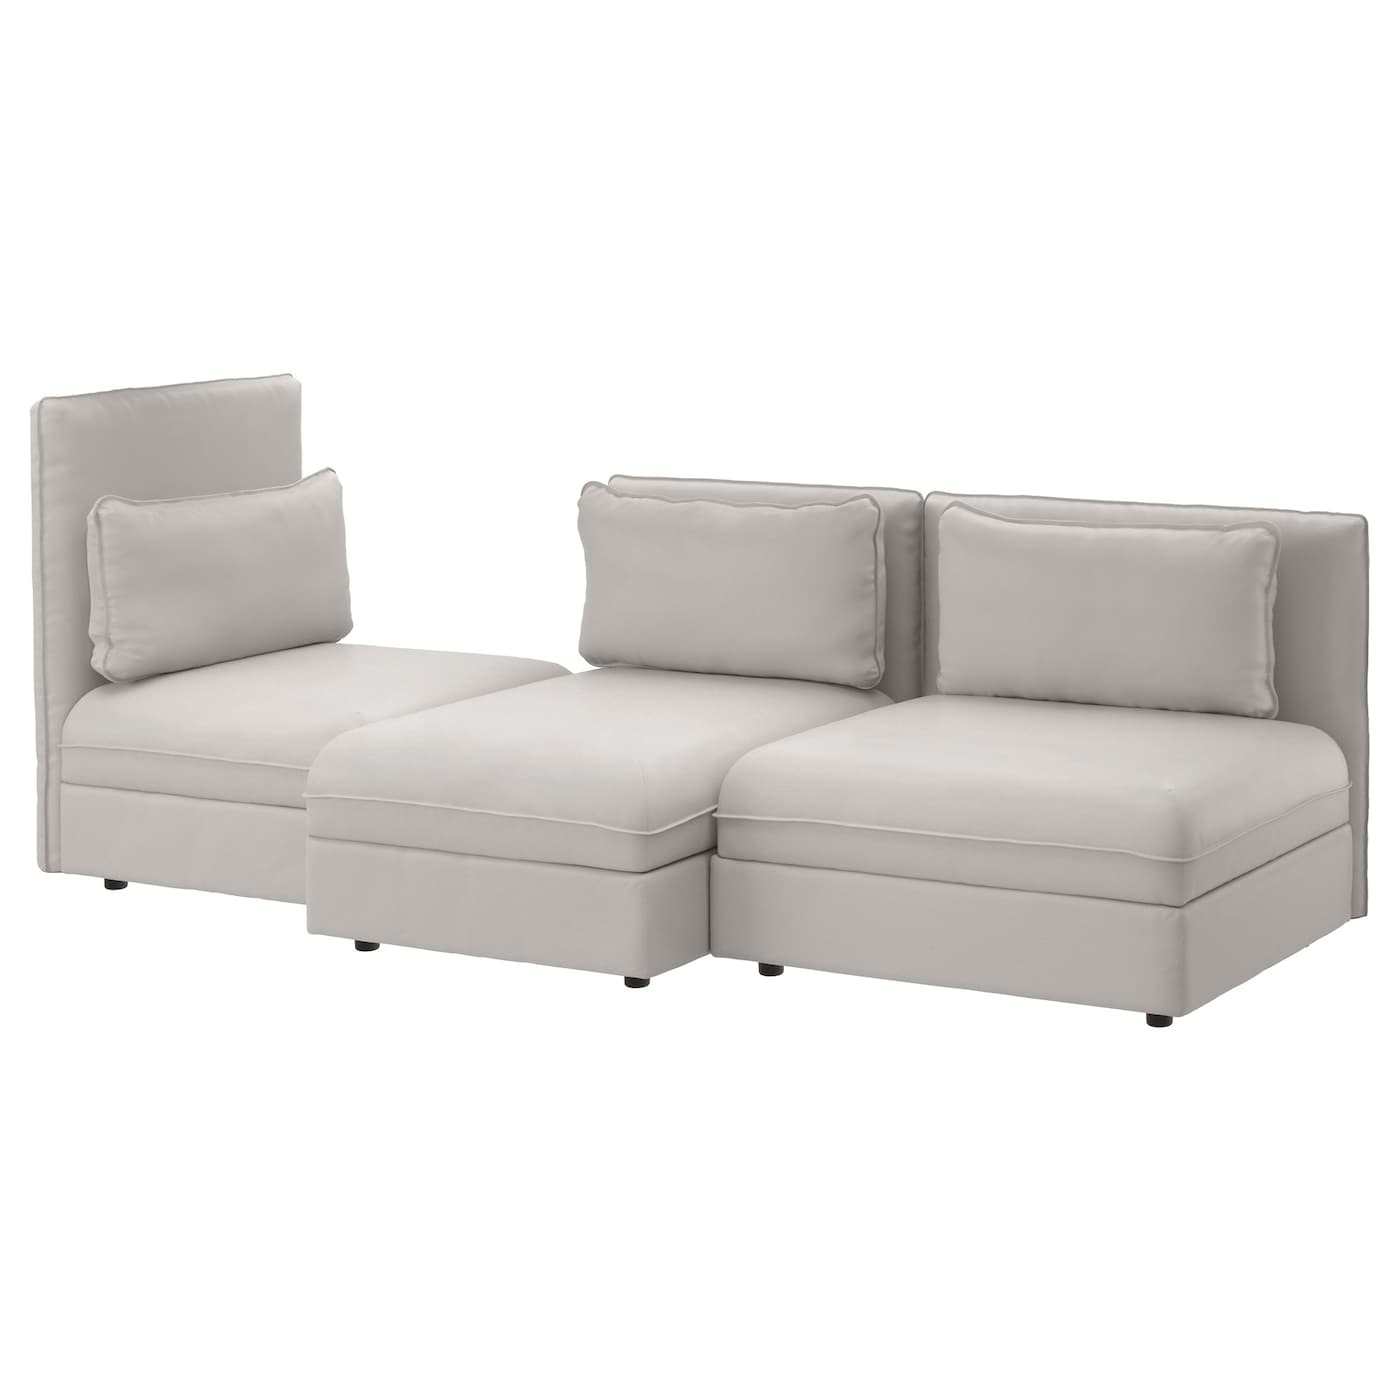 Vallentuna 3 seat sofa ramna light grey ikea for Ikea couch planer